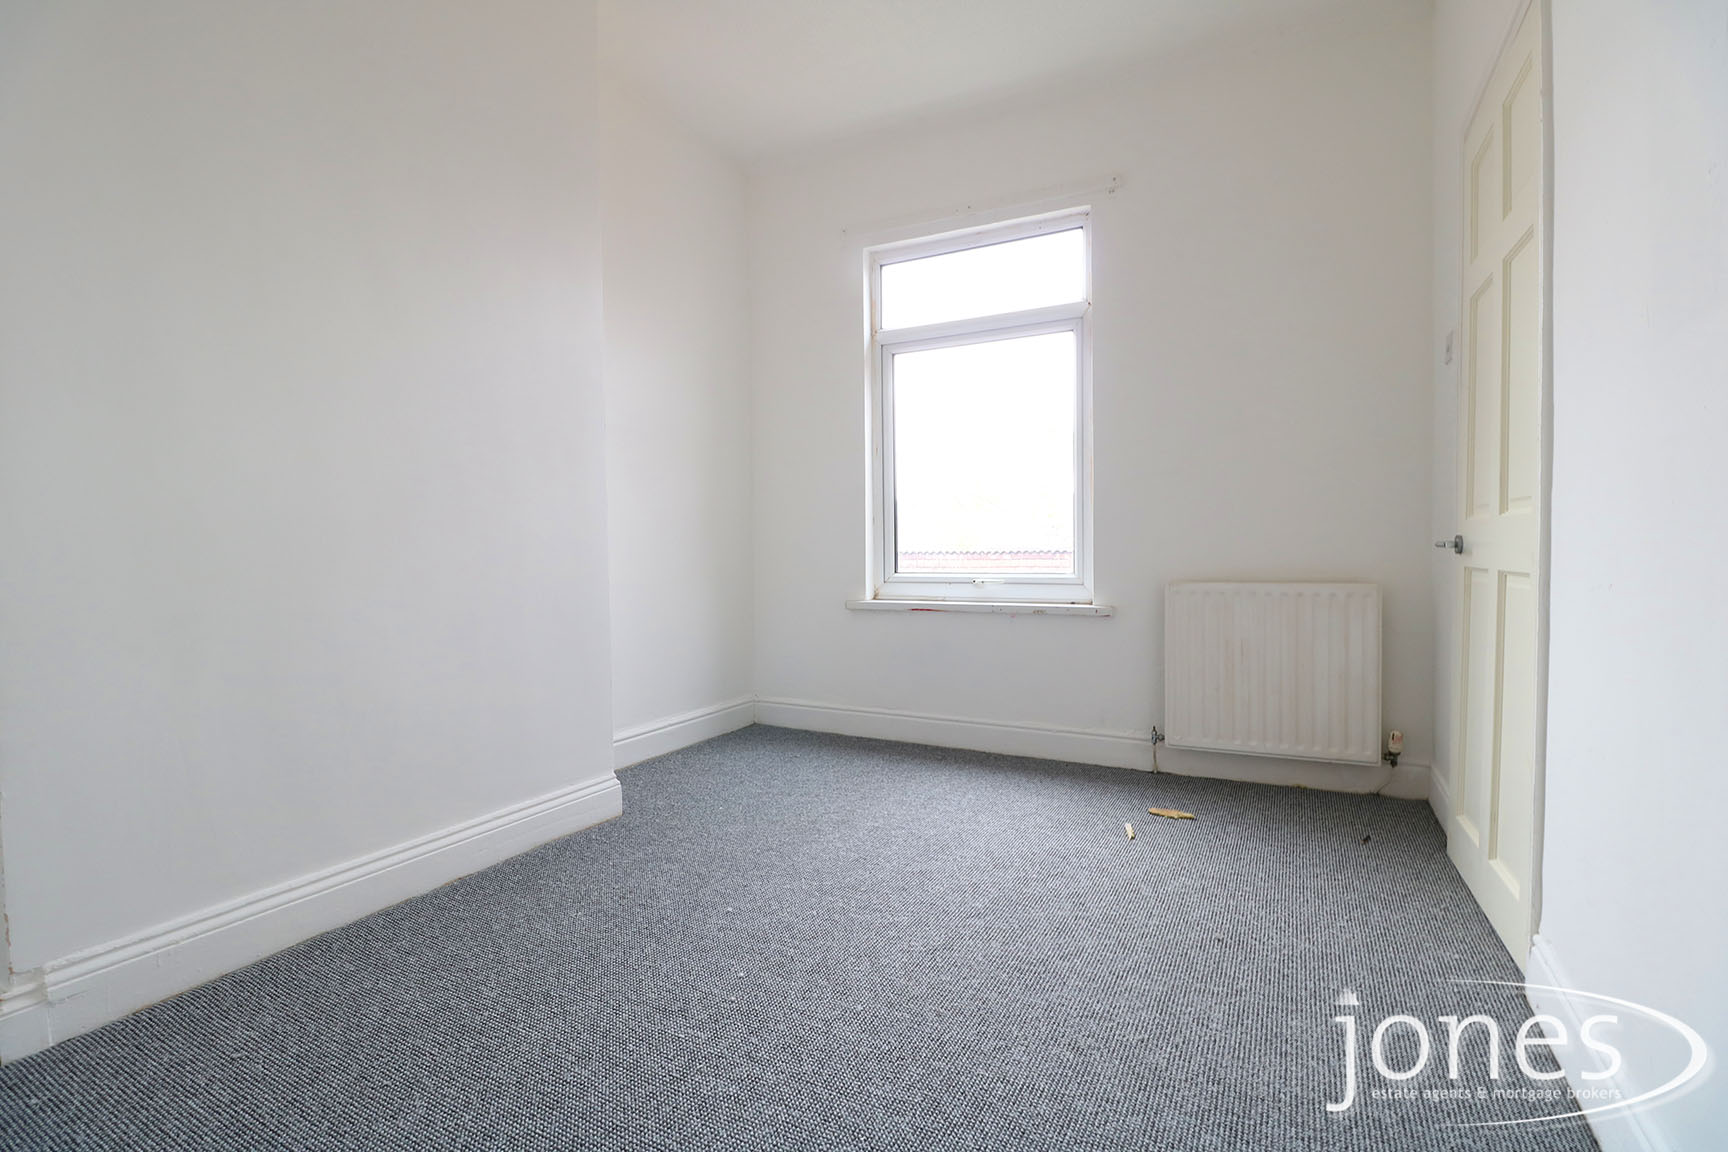 Home for Sale Let - Photo 07 Mansfield Avenue, Thornaby, Stockton on Tees, TS17 7HQ